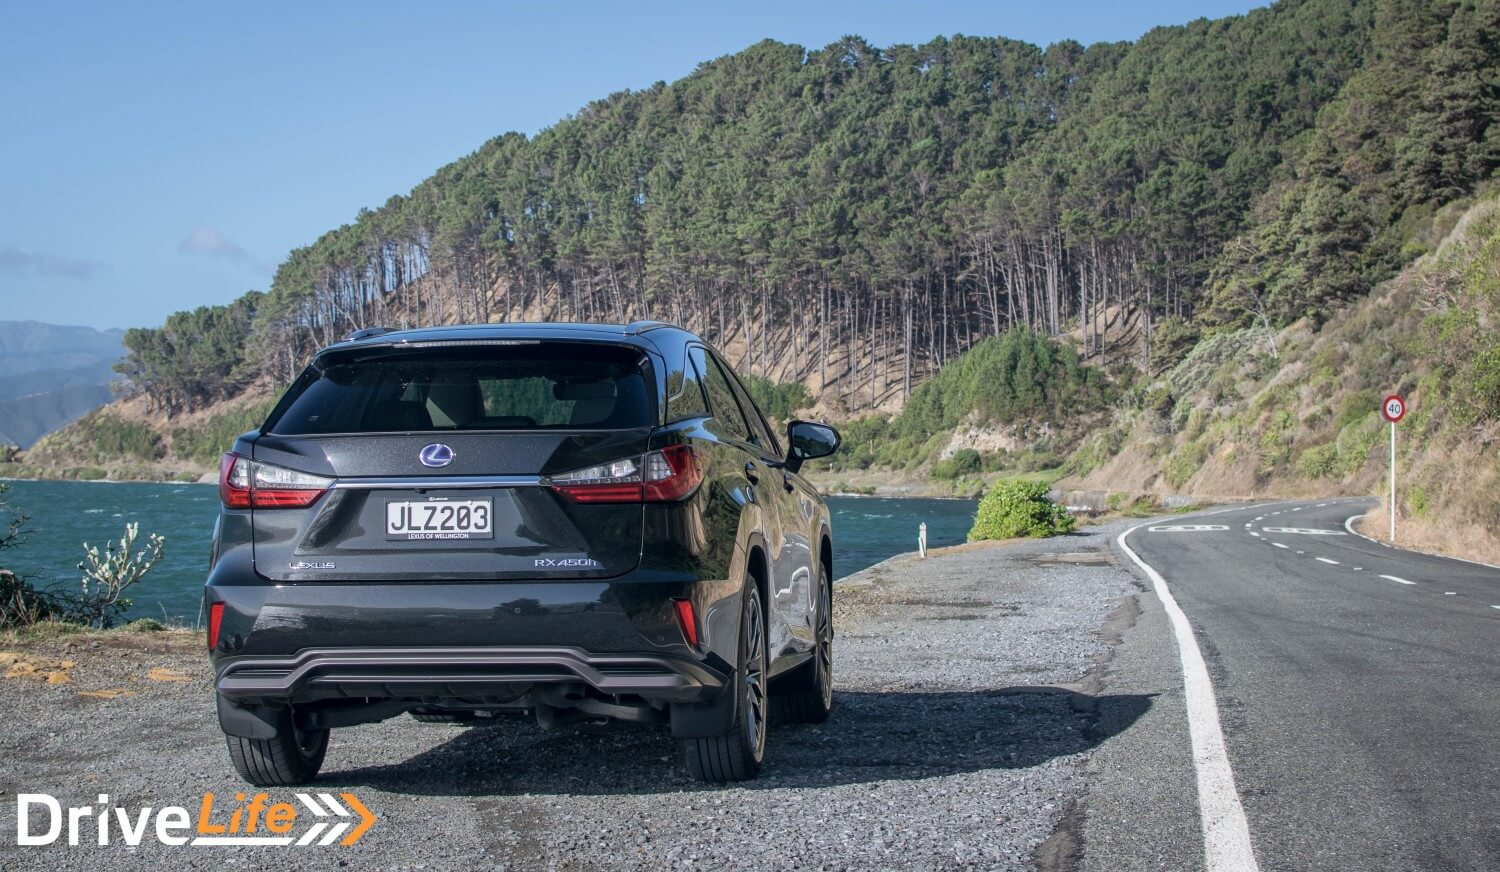 Drive-Life-NZ-Car-Review-Lexus-RX450h-F-Sport-2016-03